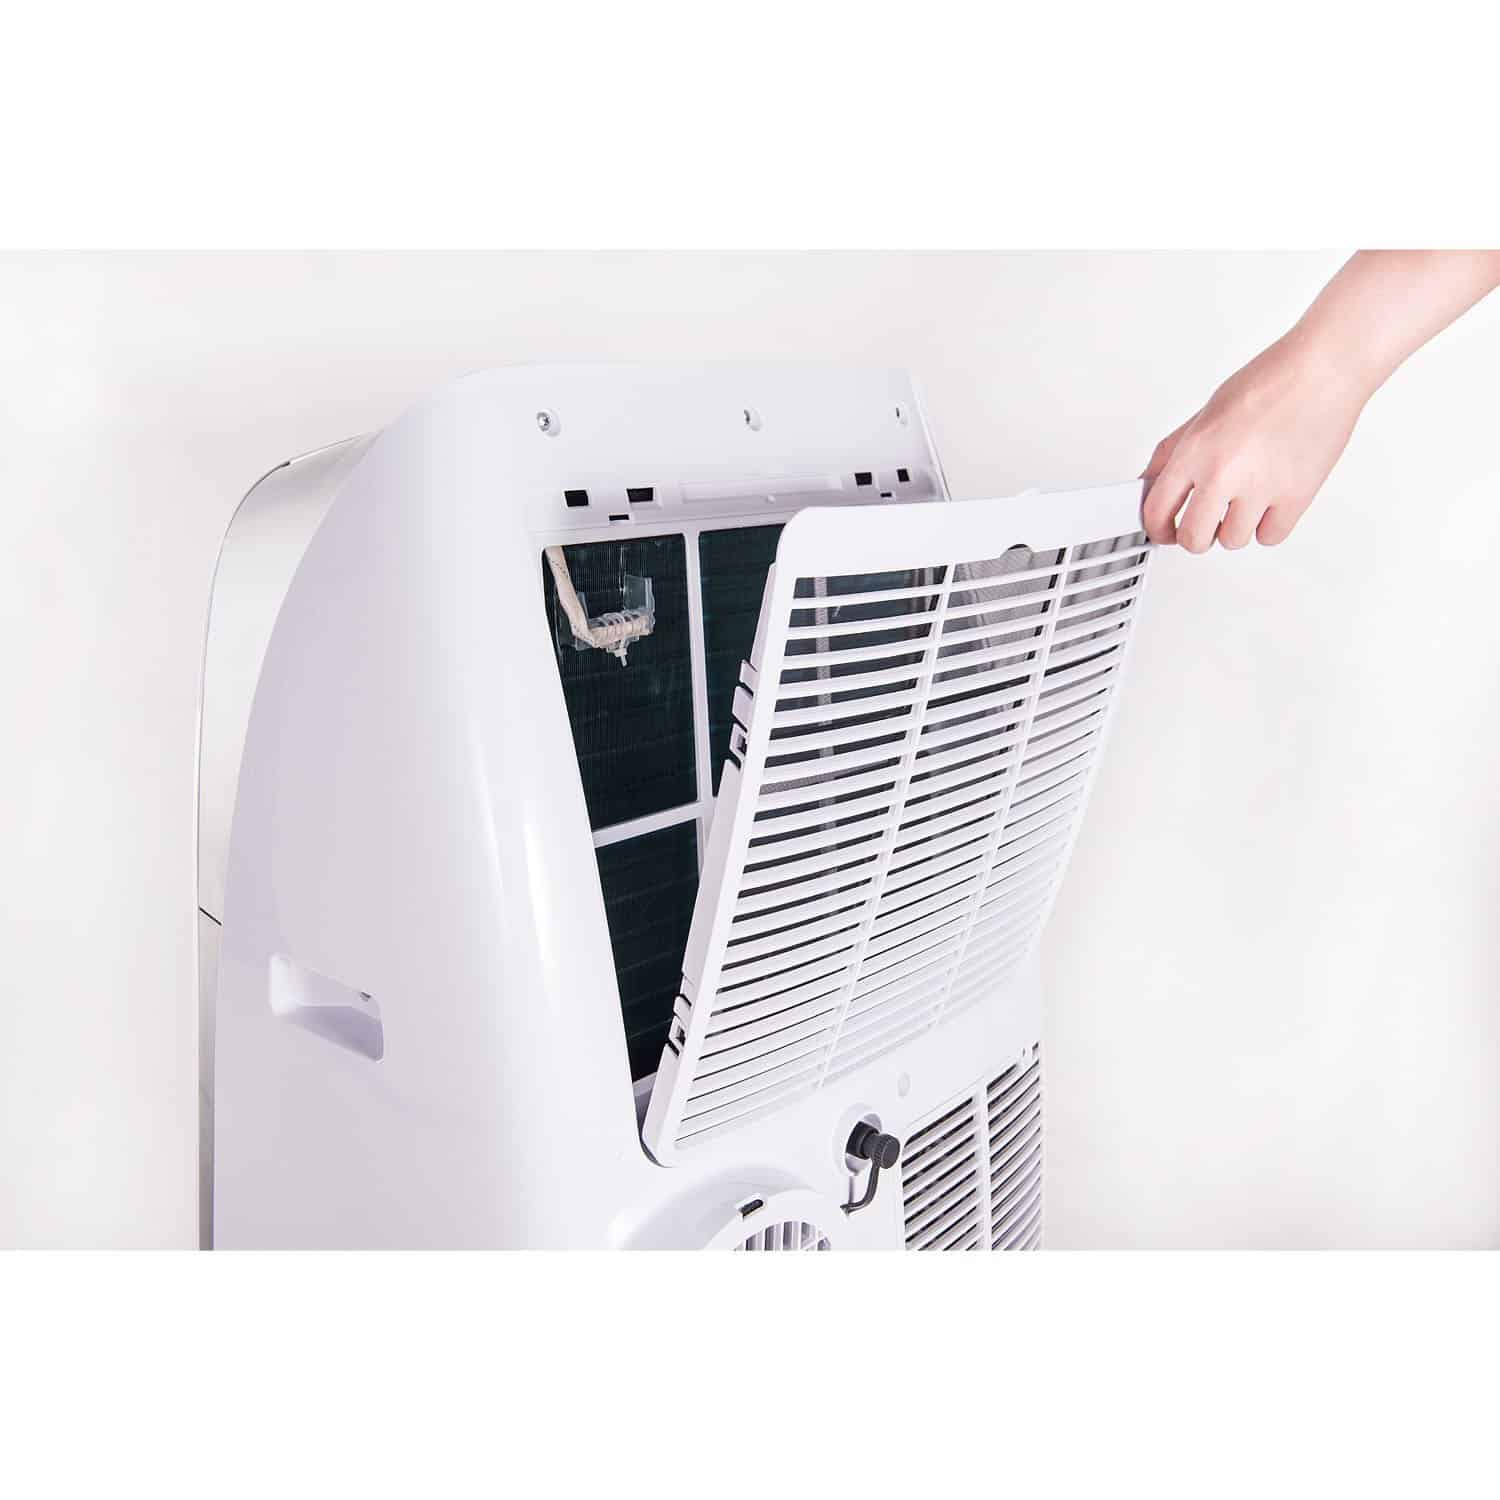 HL10CESWG HL Series 10000 Portable Air Conditioner with Remote #944537